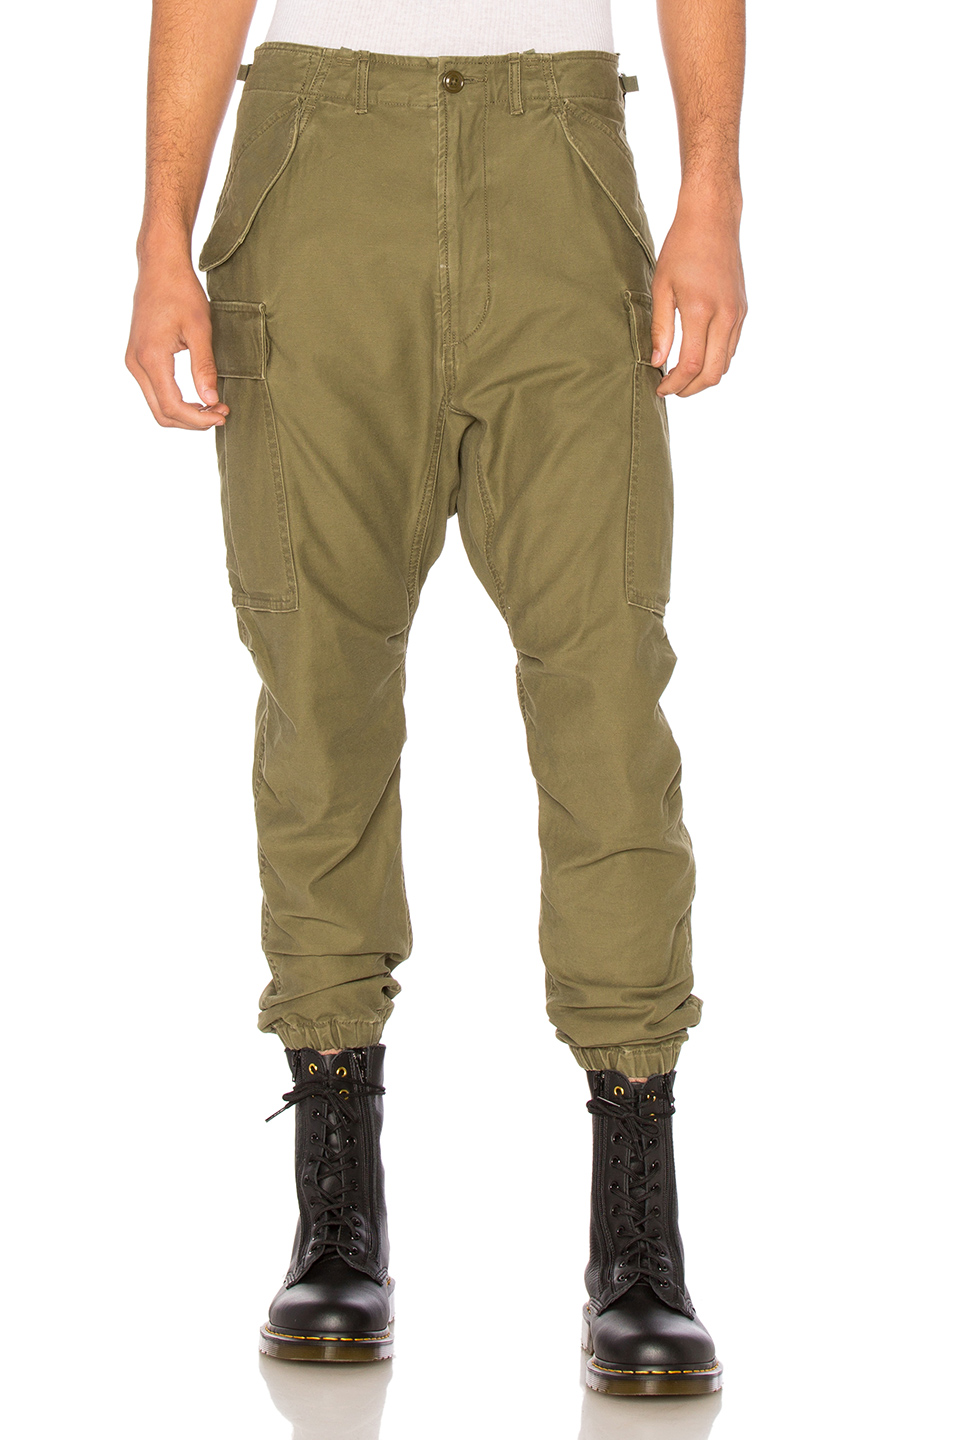 R13 Surplus Military Cargo Pants in Green